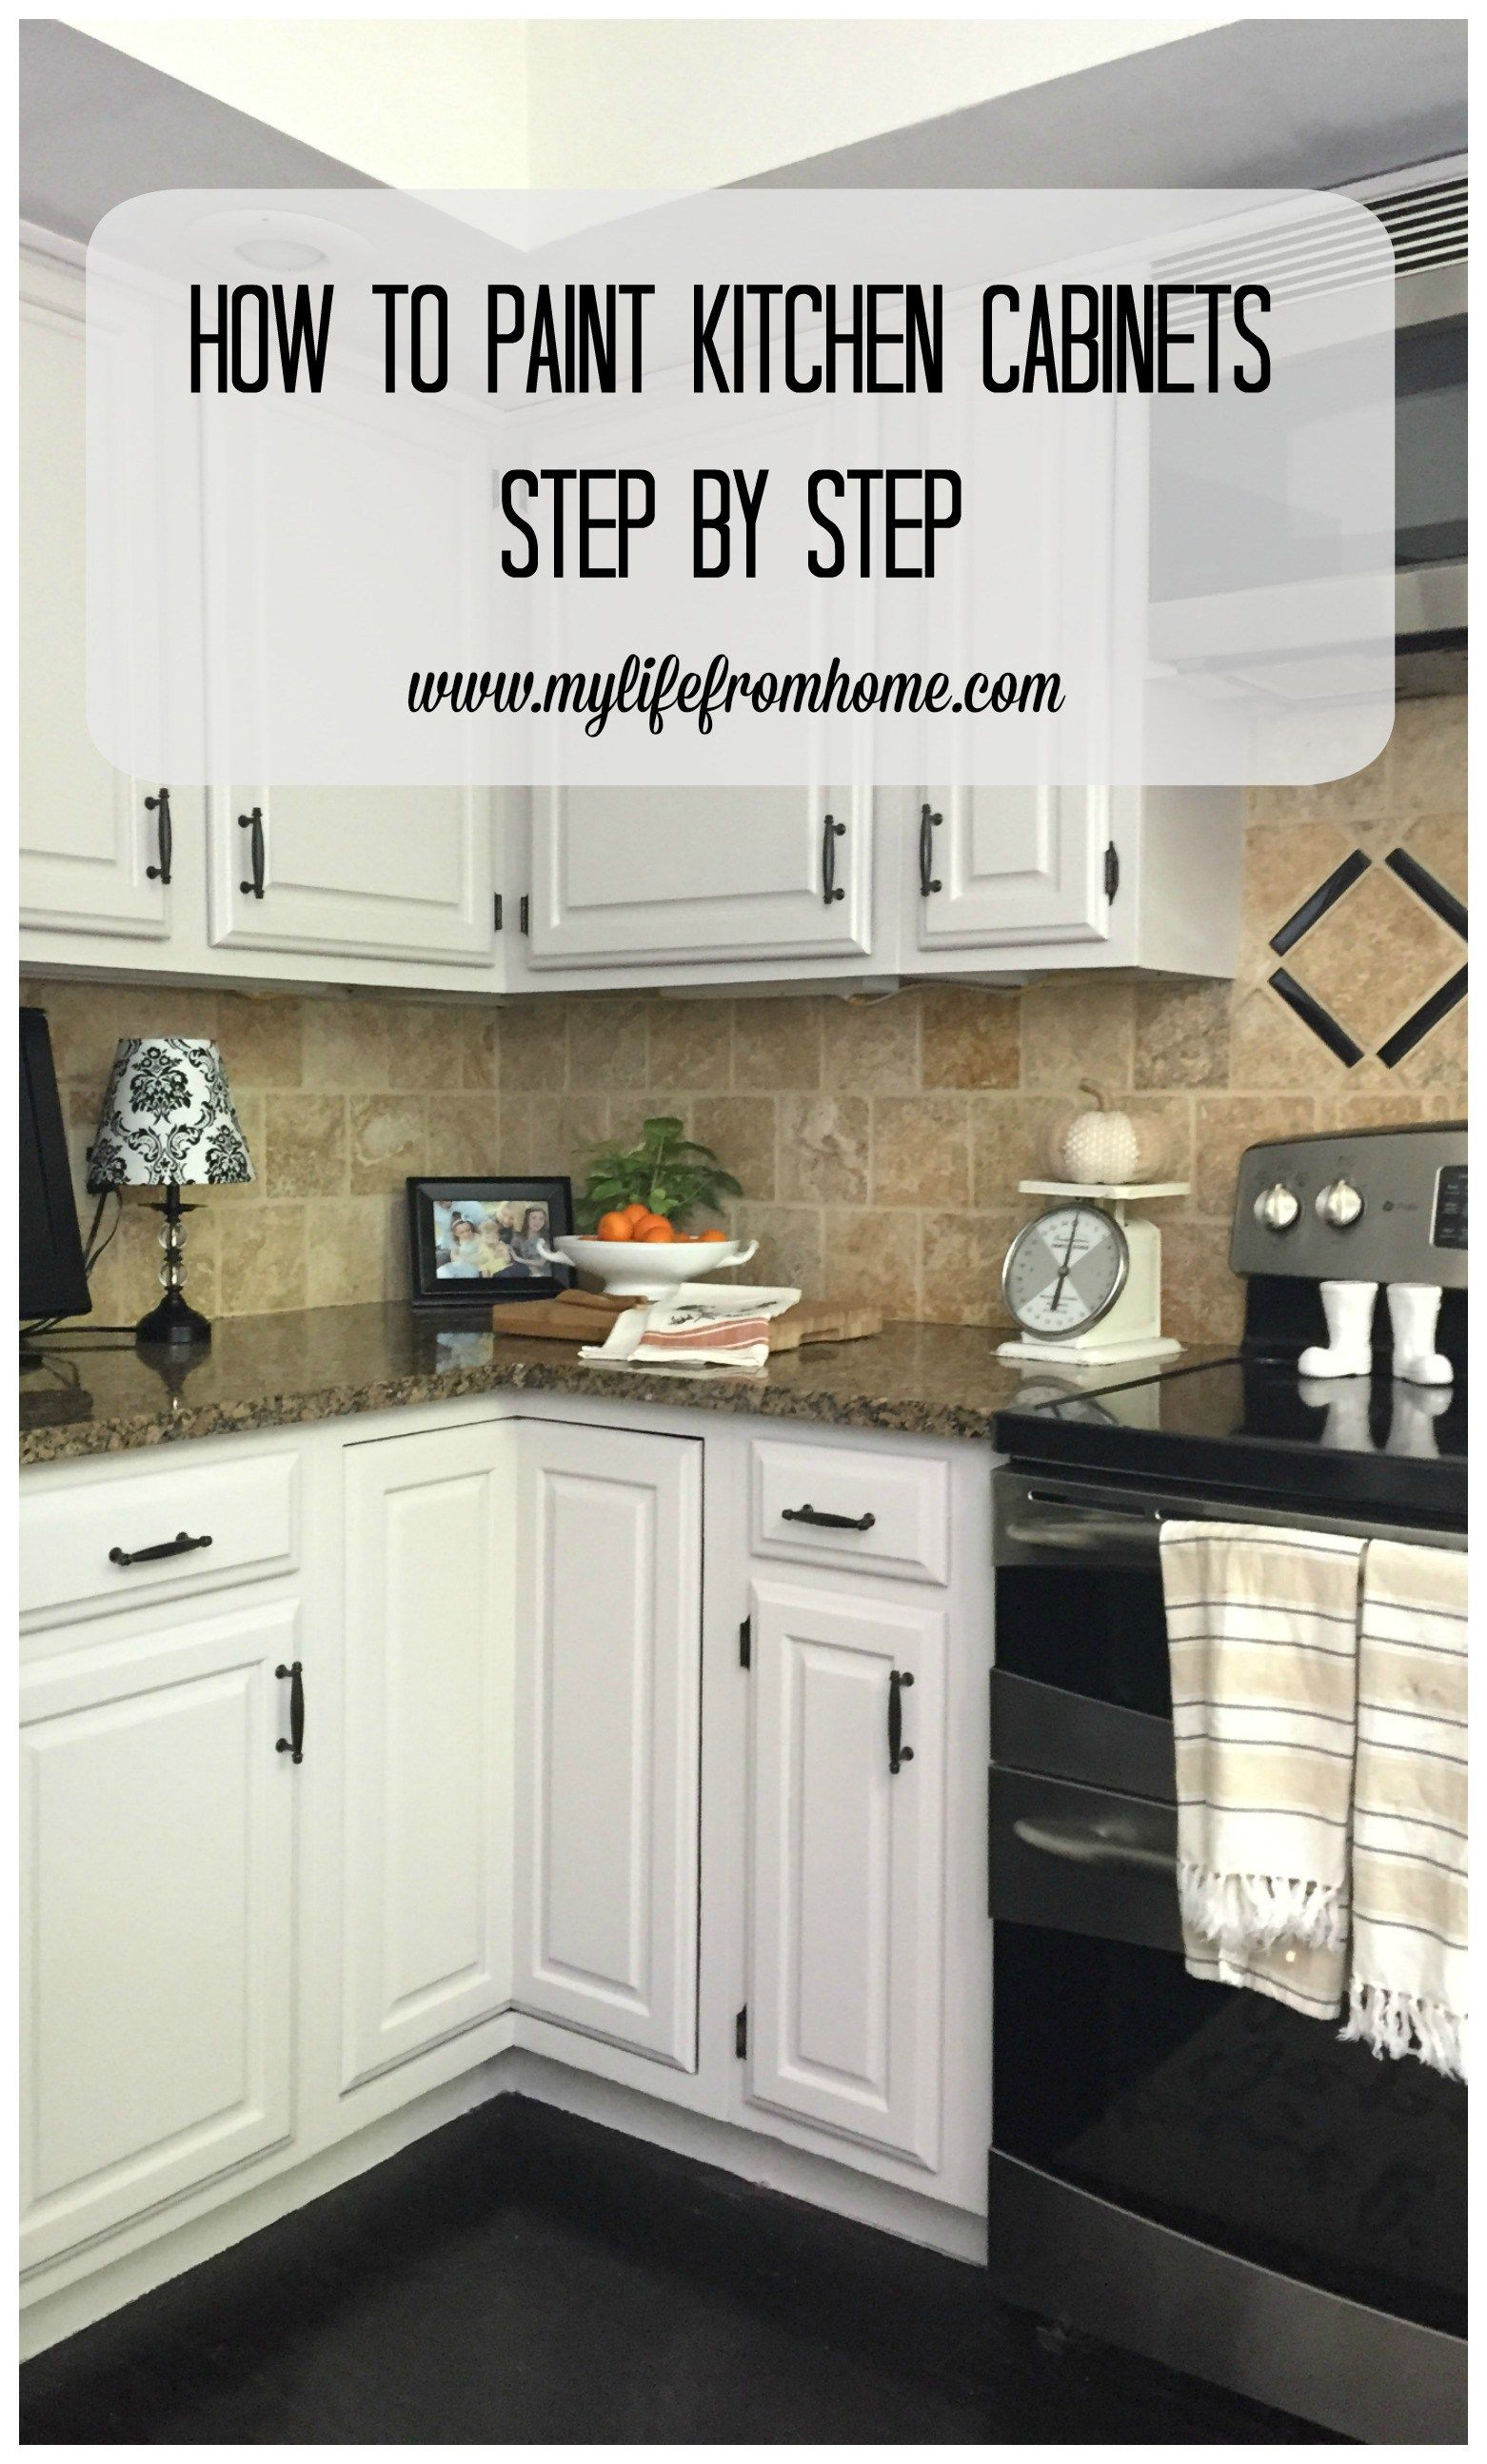 Diy How I Painted My Kitchen Cabinets White Cottage Home Living Repainting Kitchen Cabinets Diy Kitchen Cabinets Painting Painting Kitchen Cabinets